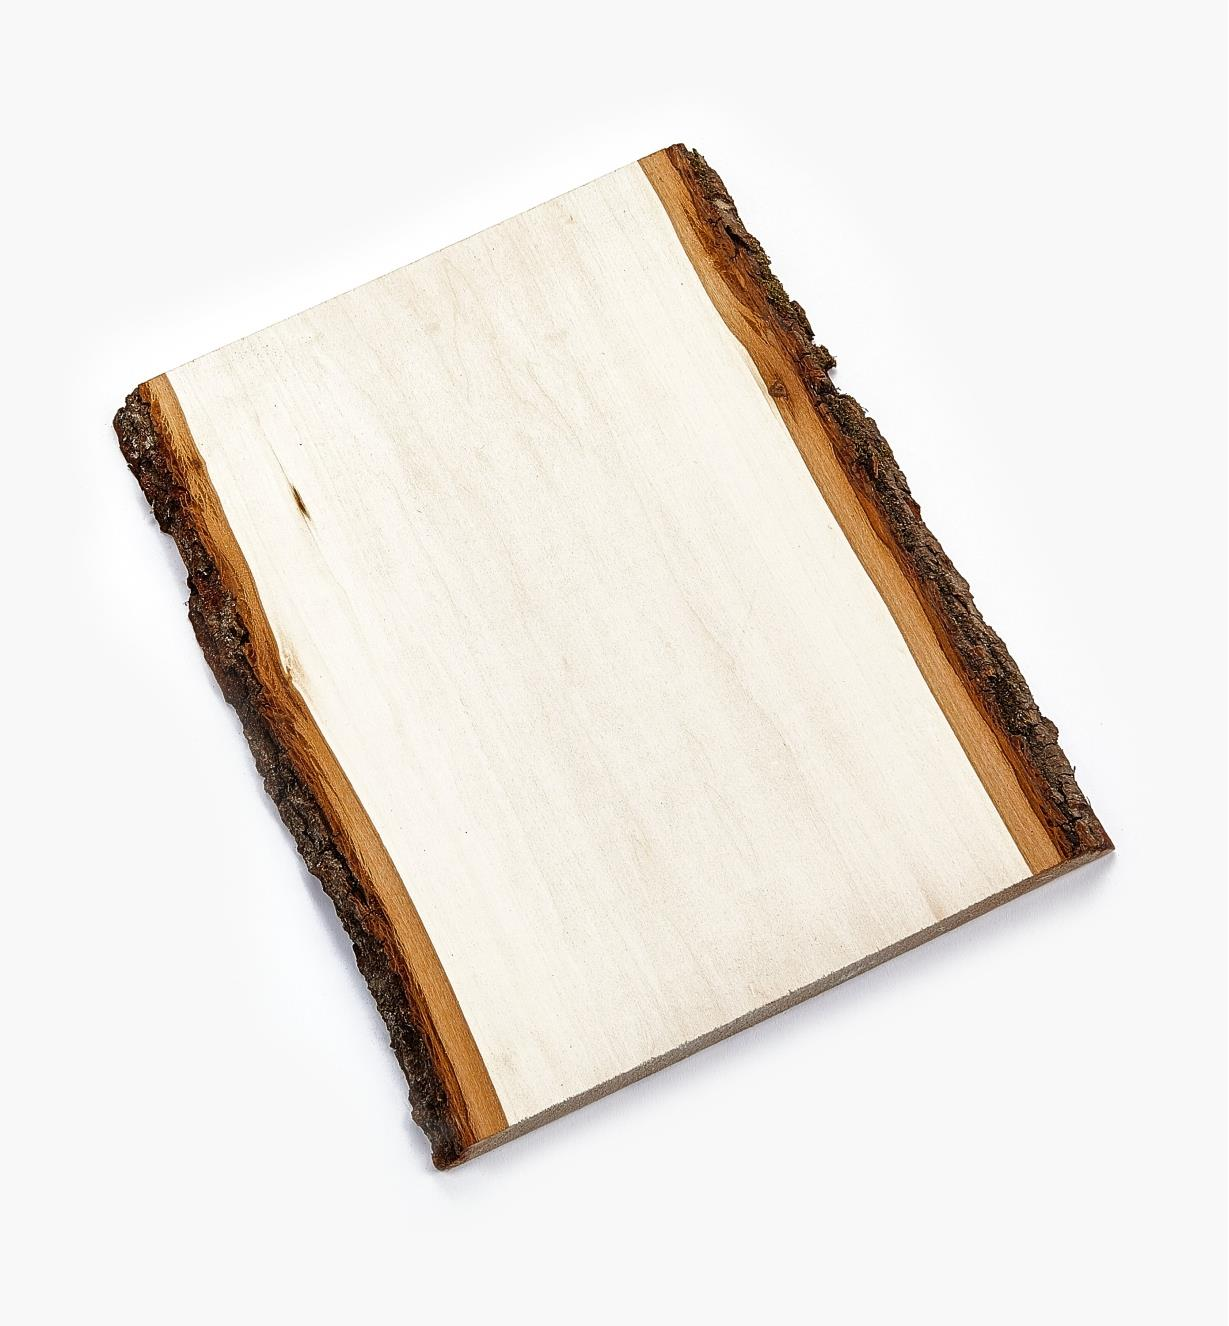 "38N1251 - 10"" × 13"" Rect. Live Edge Basswood Plaque"